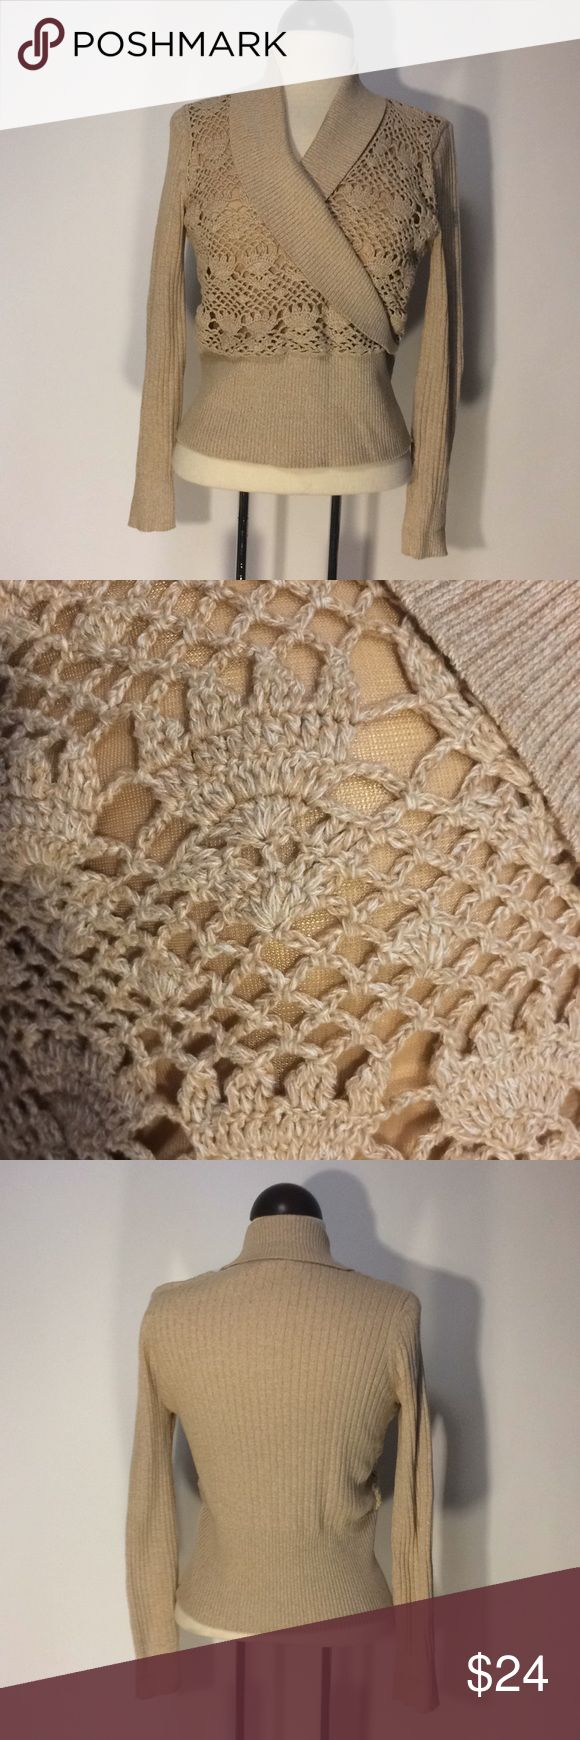 Emma James Petite Tan Lacey Sweater Sz MP Emma James tan Lace (lined underneath) sweater Sz M petite. 100% cotton. In excellent condition. Emma James Sweaters V-Necks